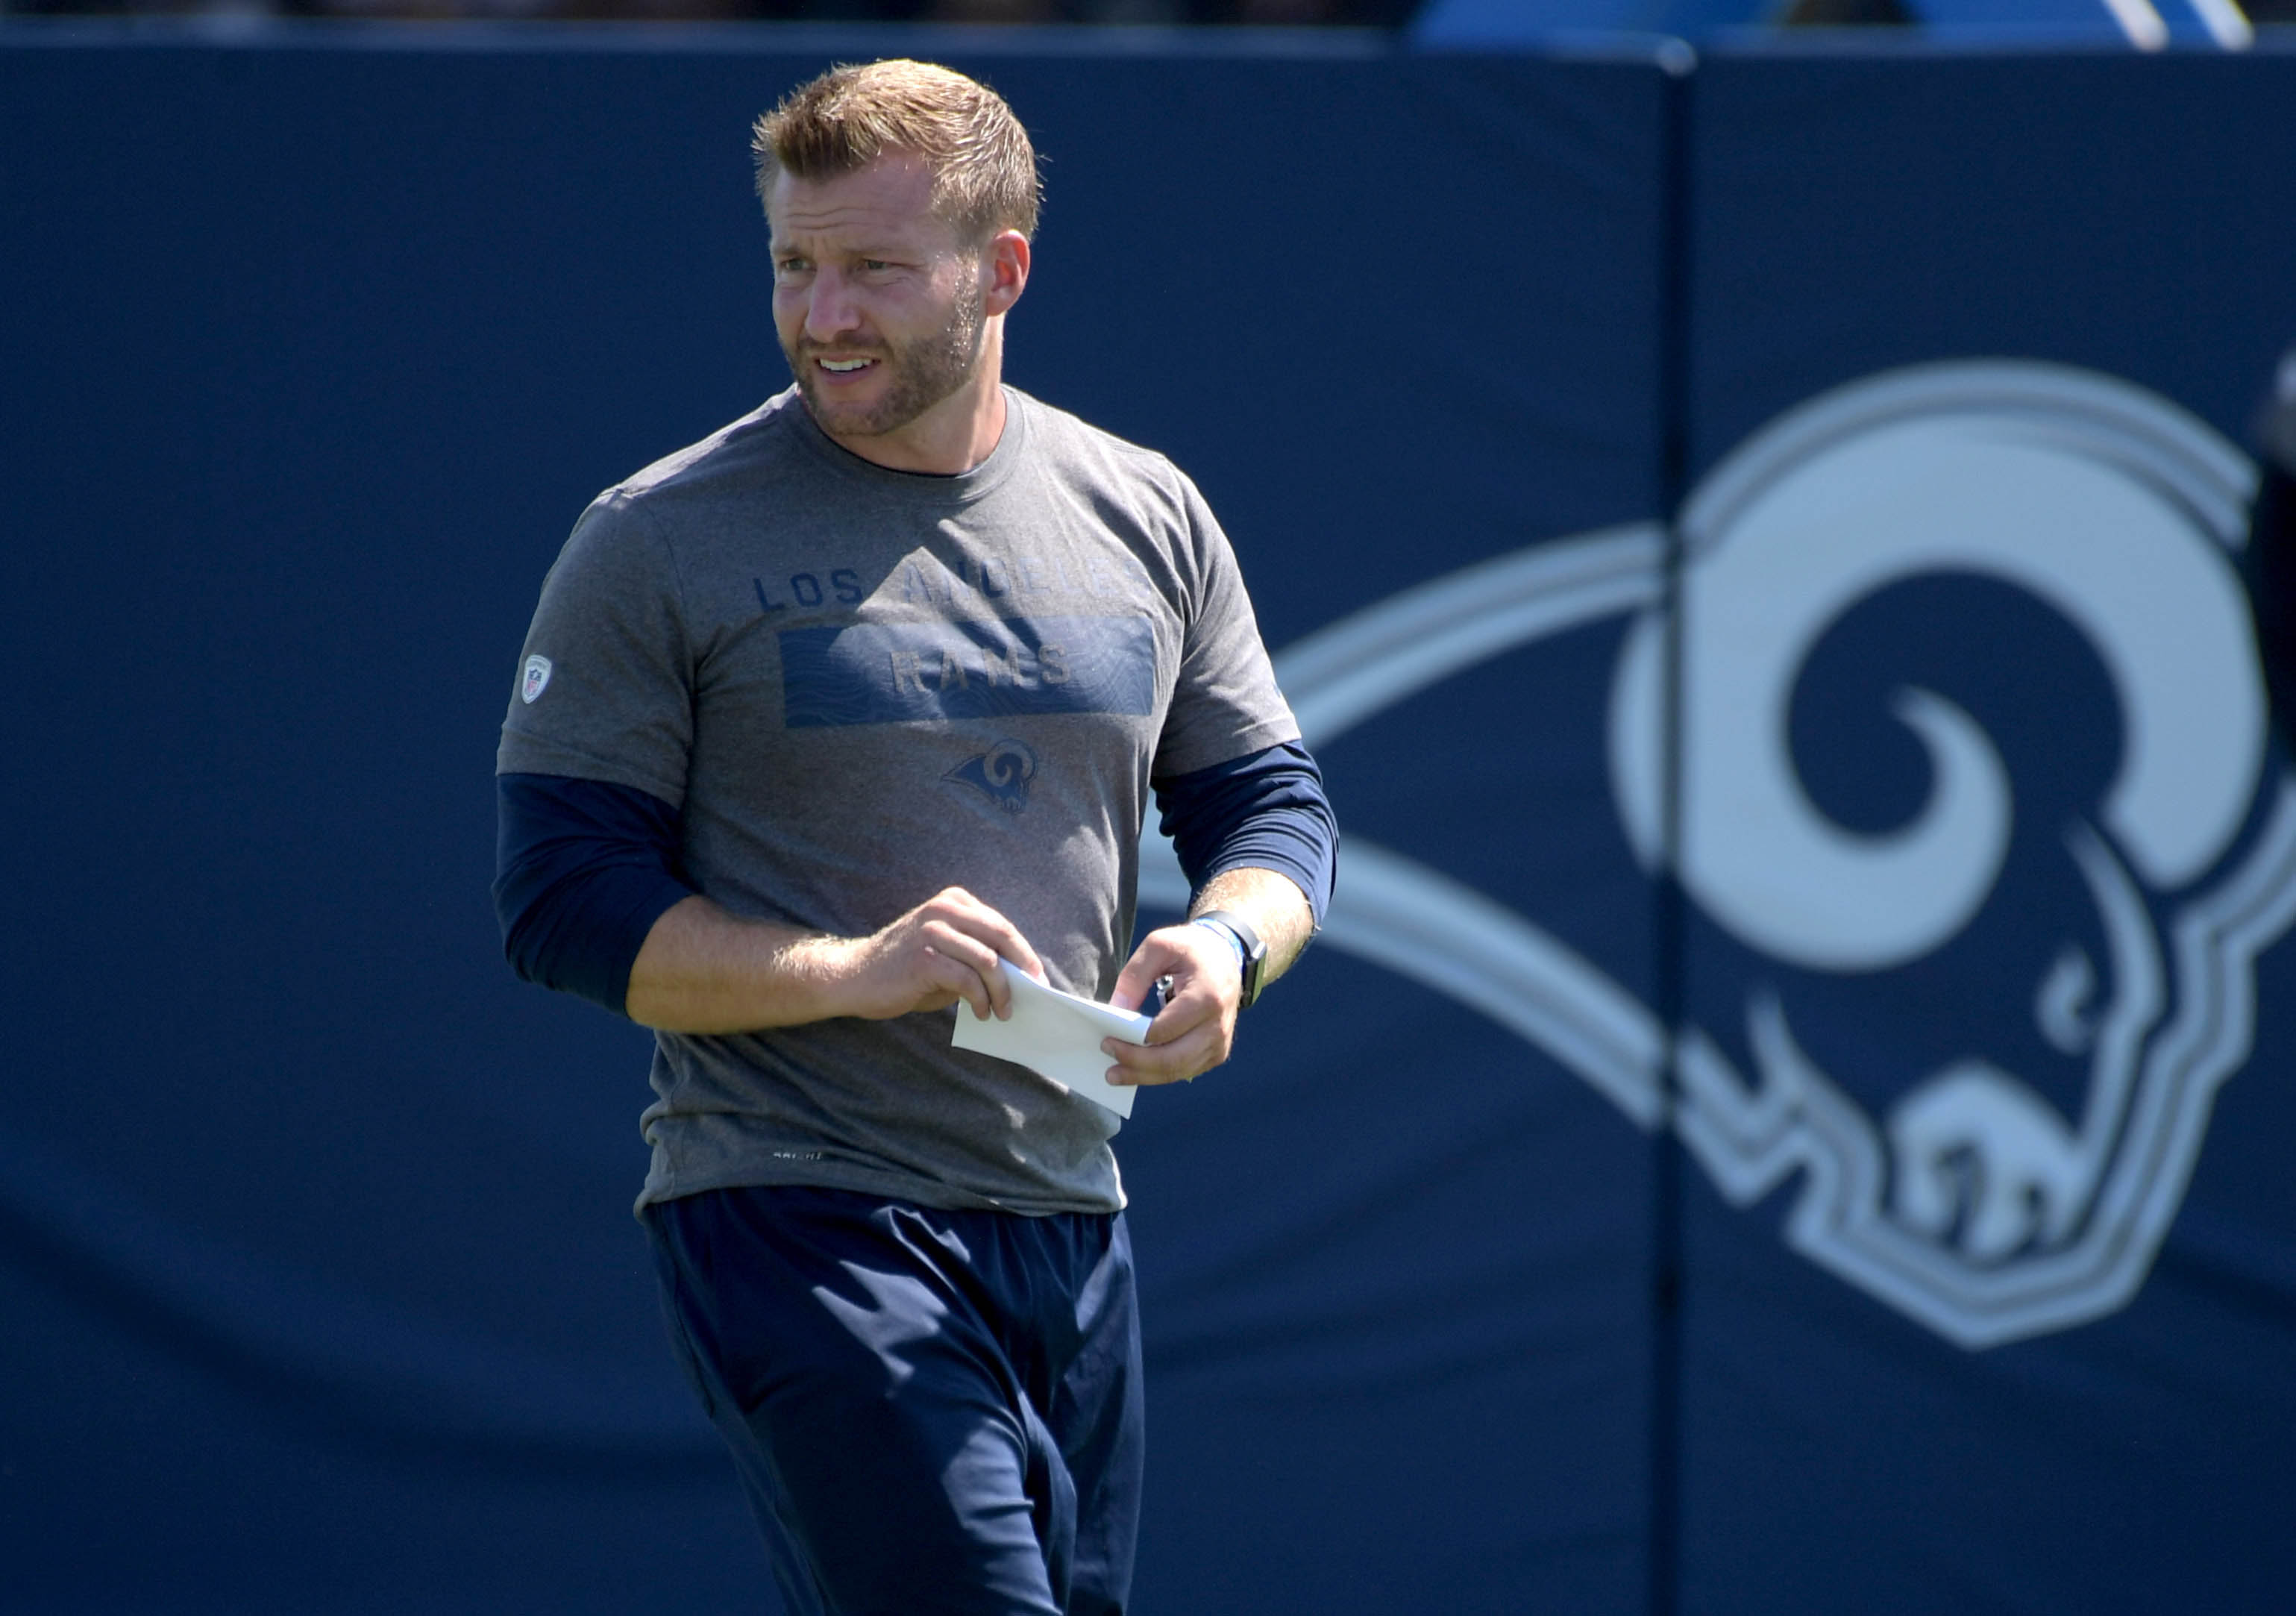 Los Angeles Rams coach Sean McVay during training camp, July 28, 2018.